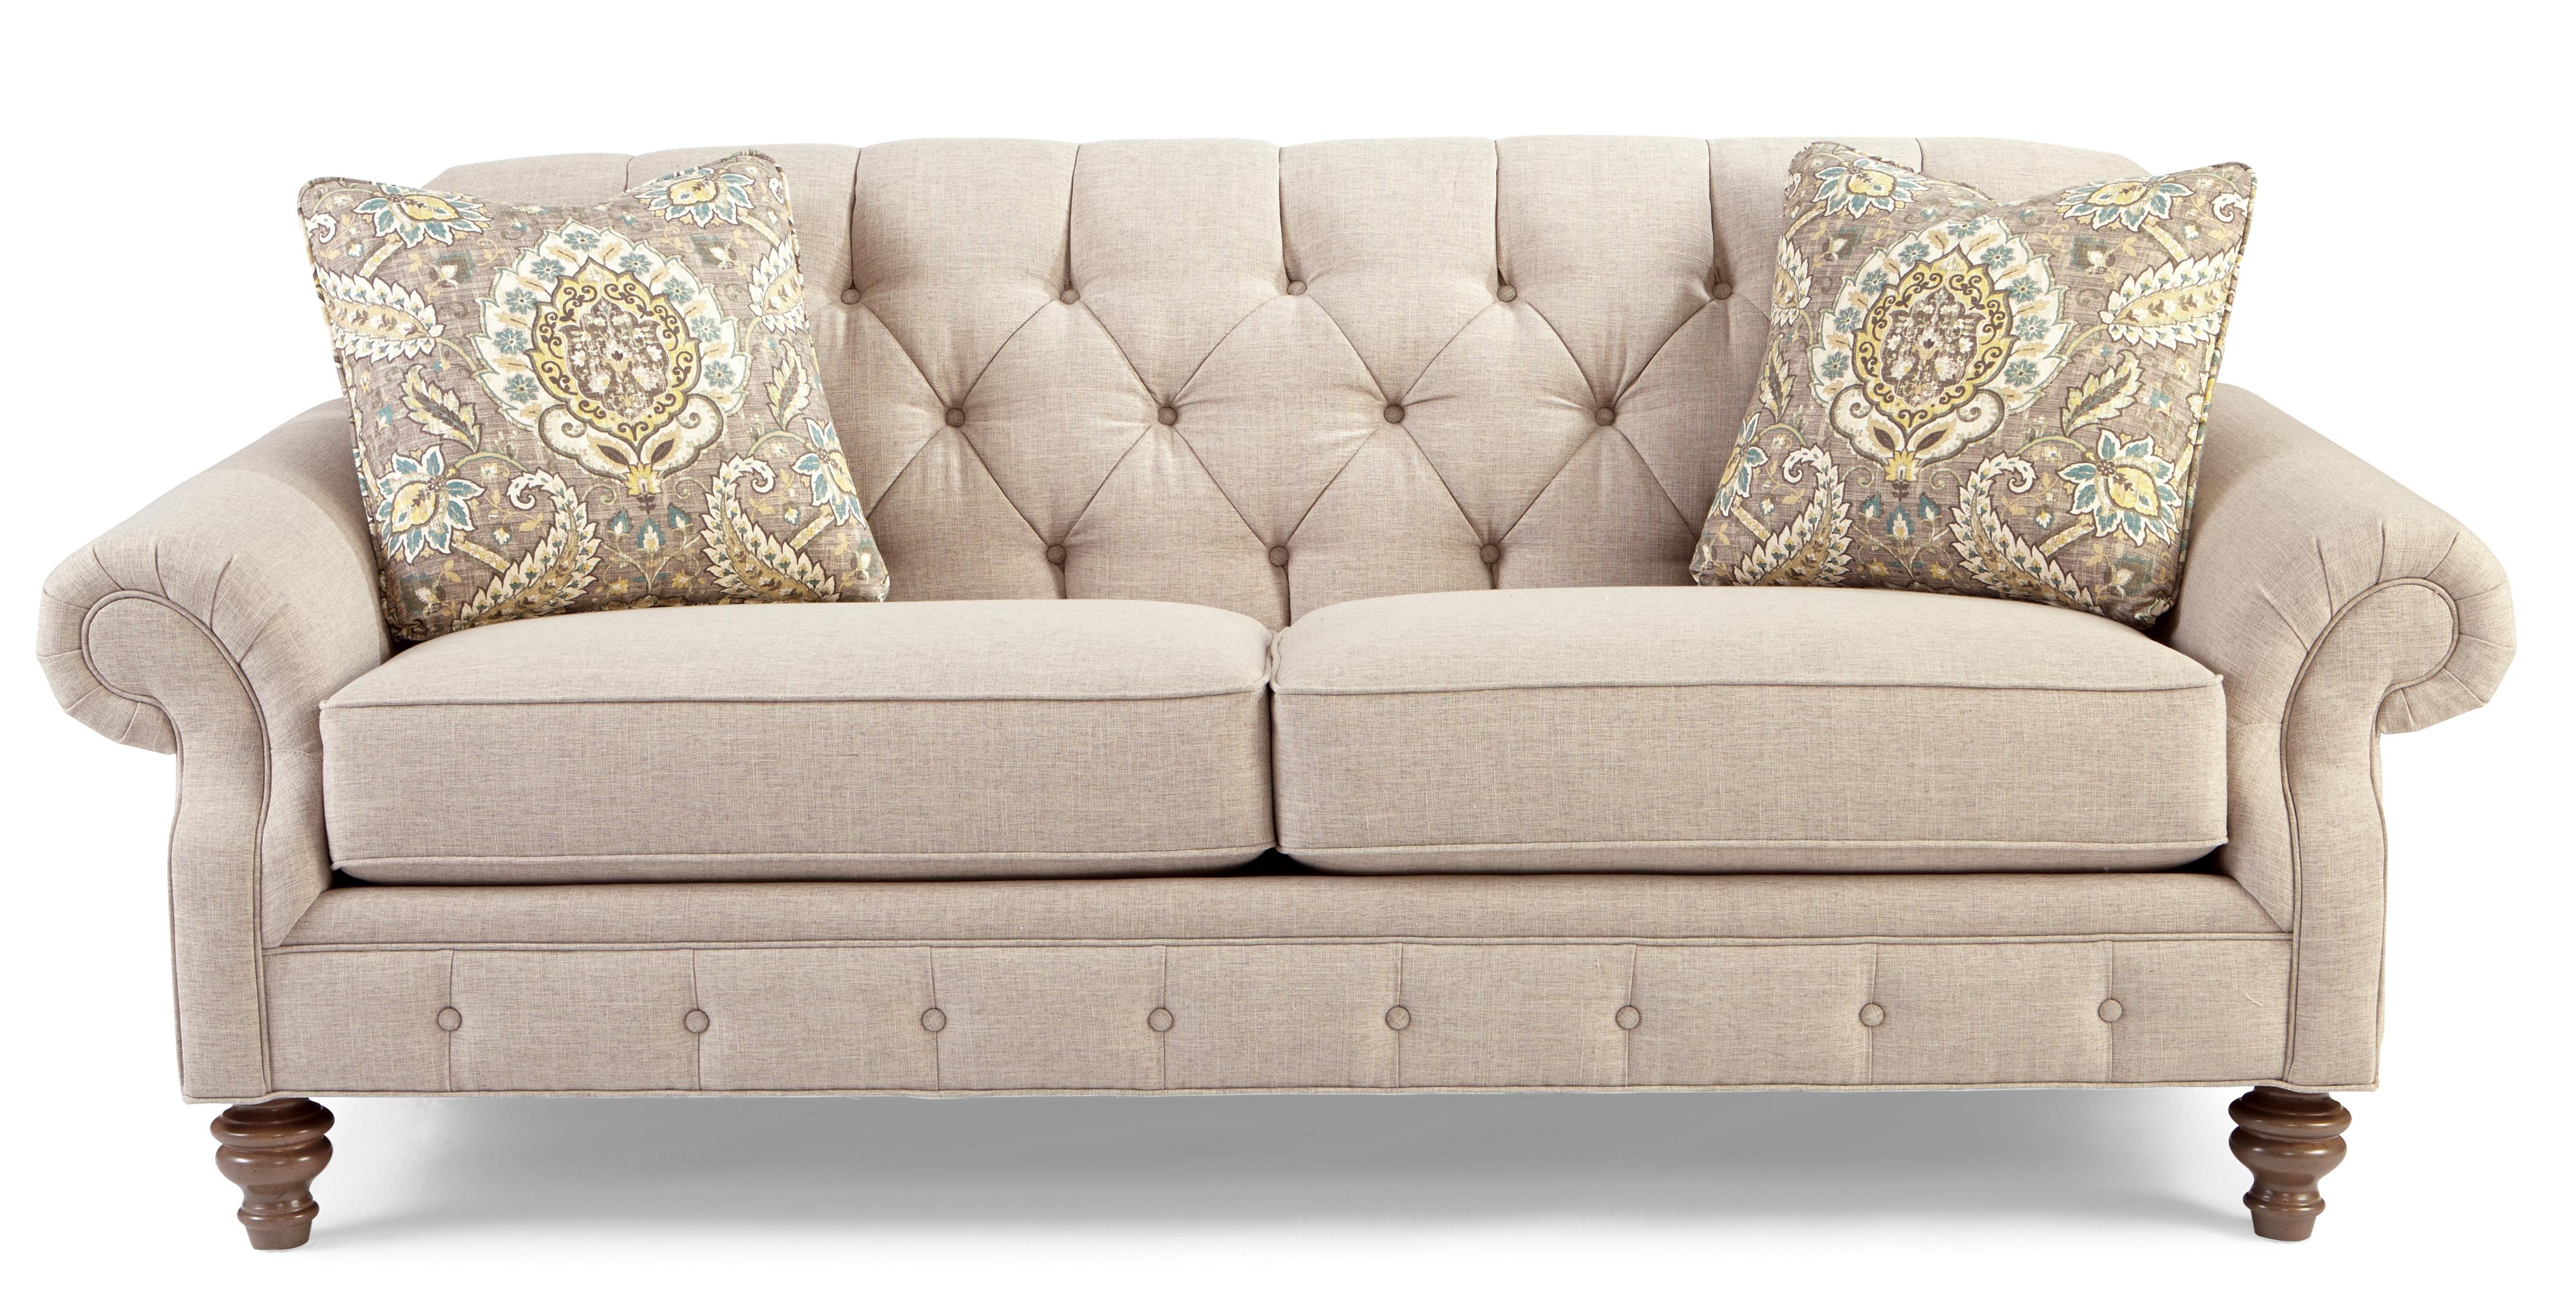 Craftmaster 7463 746350 Traditional Button Tufted Sofa